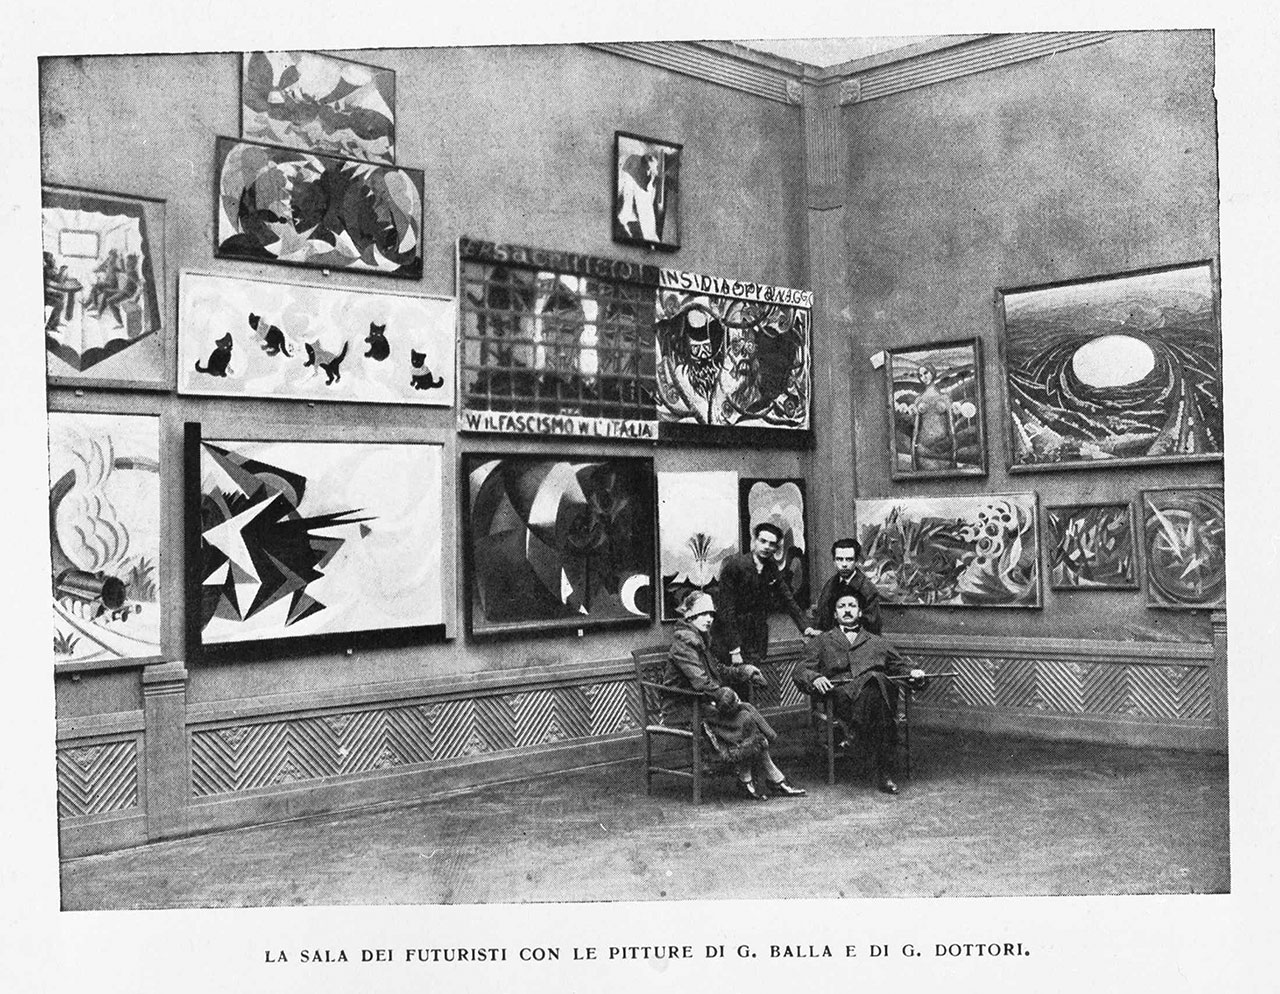 Installation view of III Biennale di Roma 1925 – Futurist group show curated by F. T. Marinetti. Wall A: works by Giacomo Balla, Fortunato Depero and Gerardo Dottori Among the exhibited works, Canaringatti - Gatti futuristi (1923-1924) by Giacomo Balla - For the work © Giacomo Balla by SIAE 2018. Image published in the magazine EMPORIUM. Archive E. Gigli, Roma.